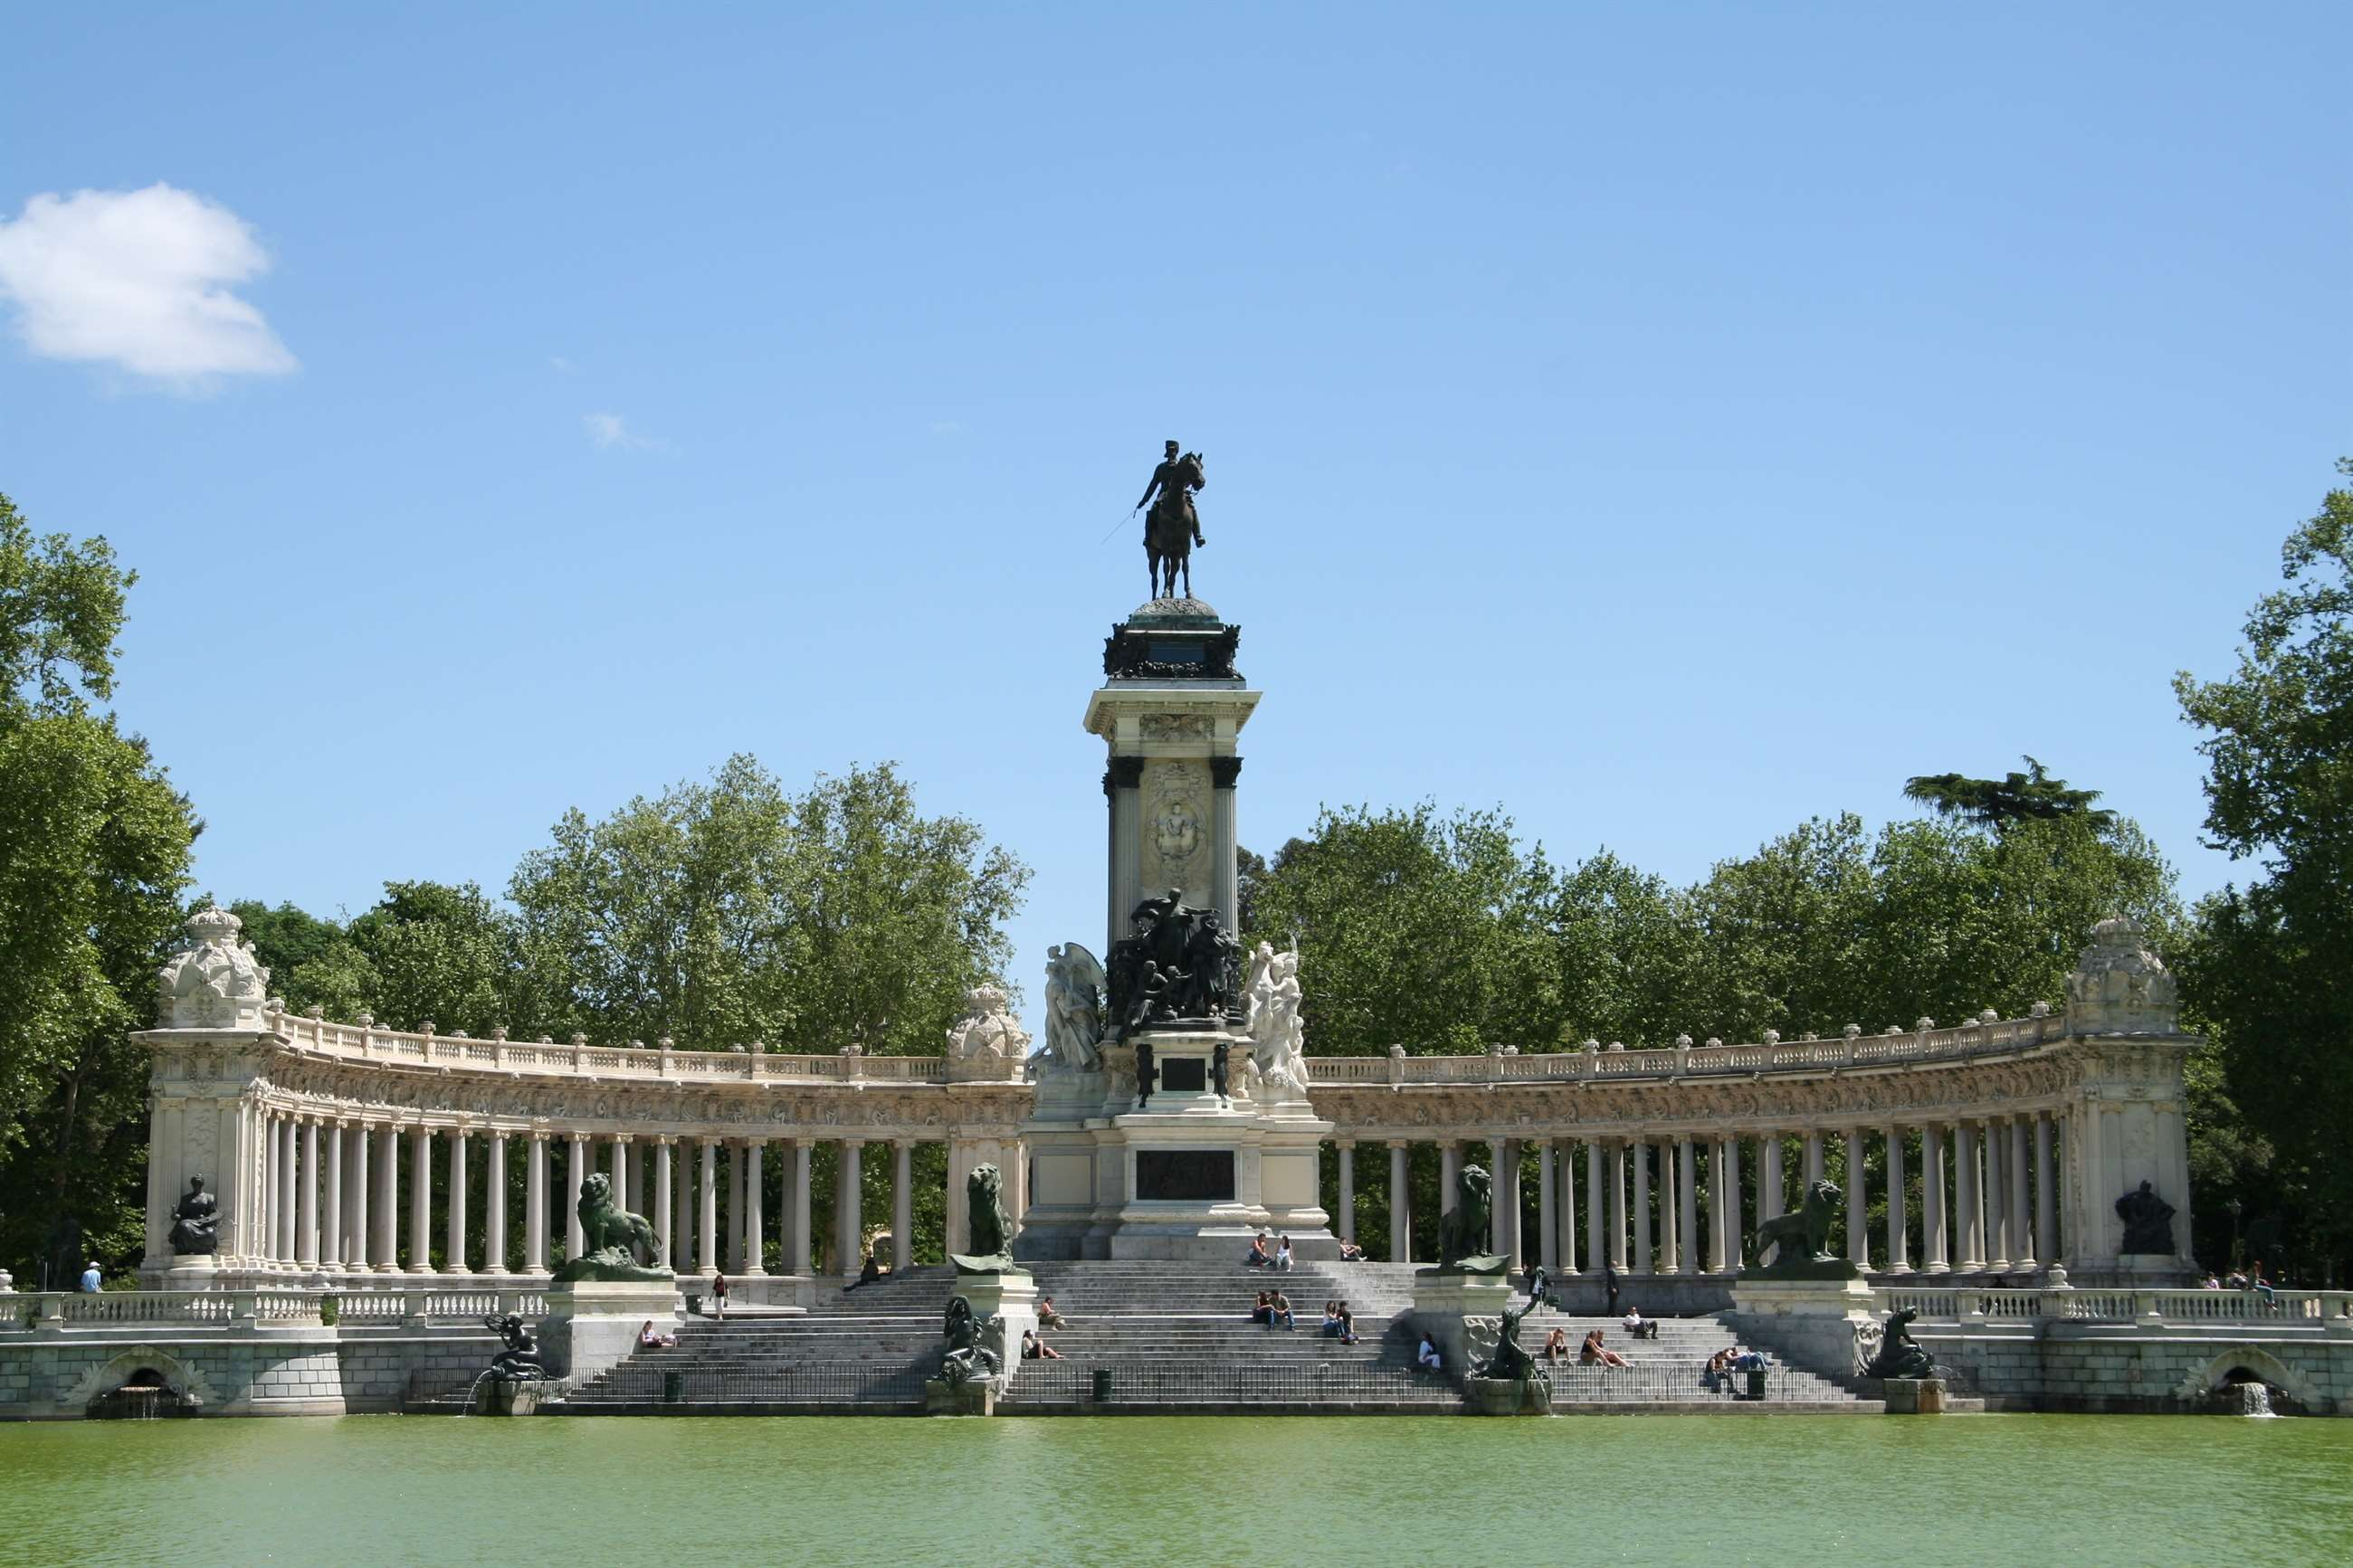 4_madrid city6 el retiro park